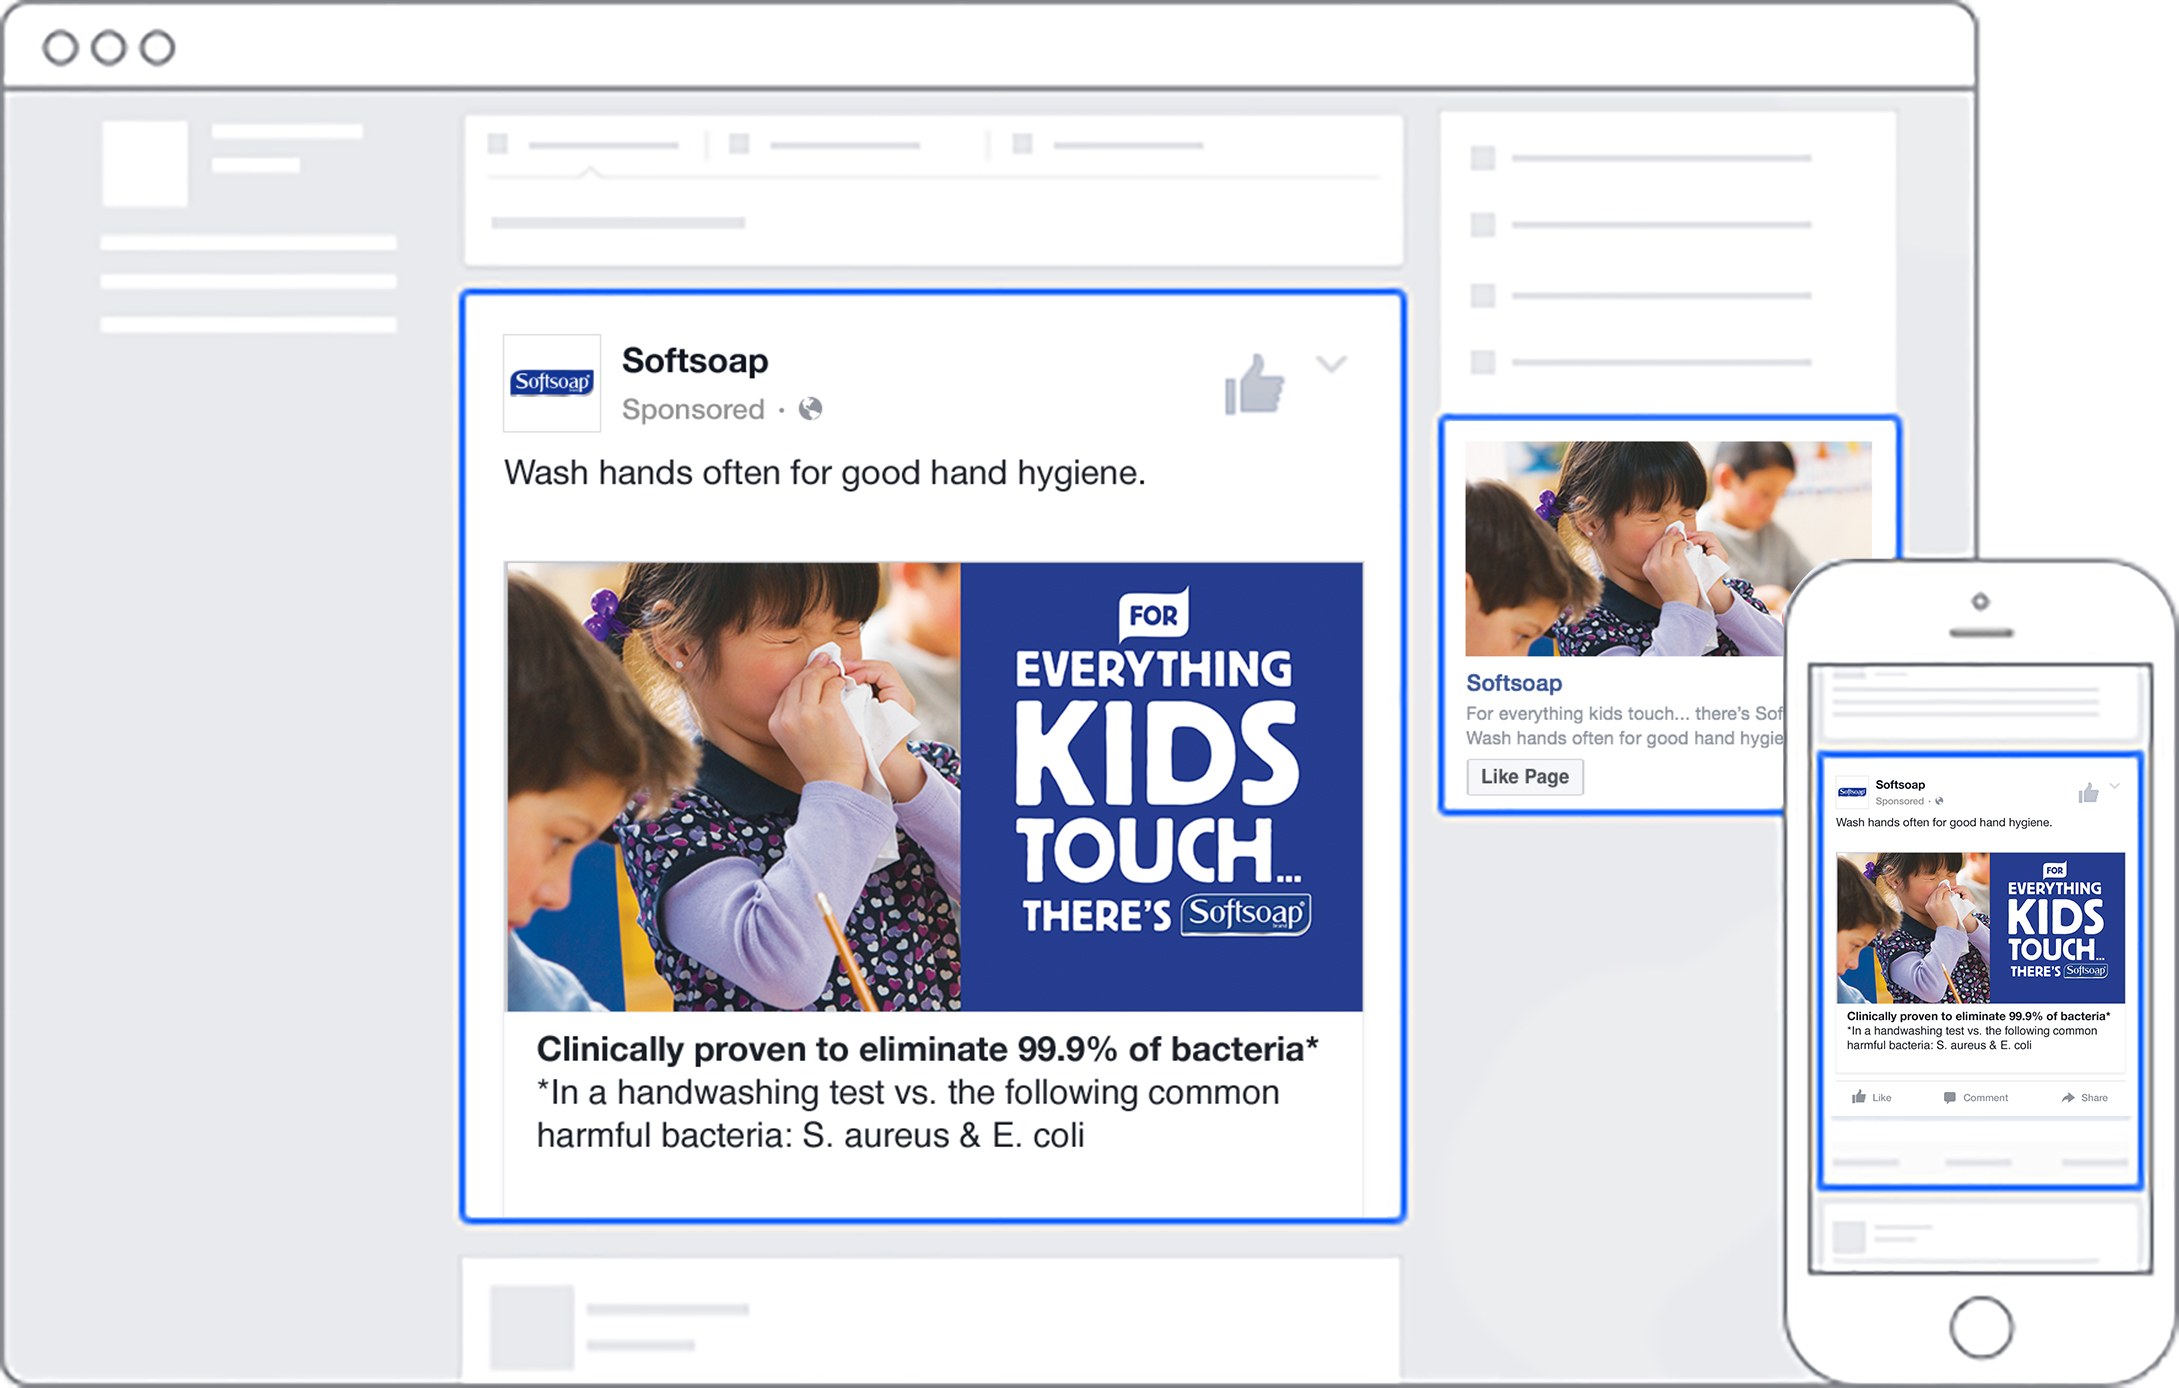 Facebook activations during cough, cold and flu season